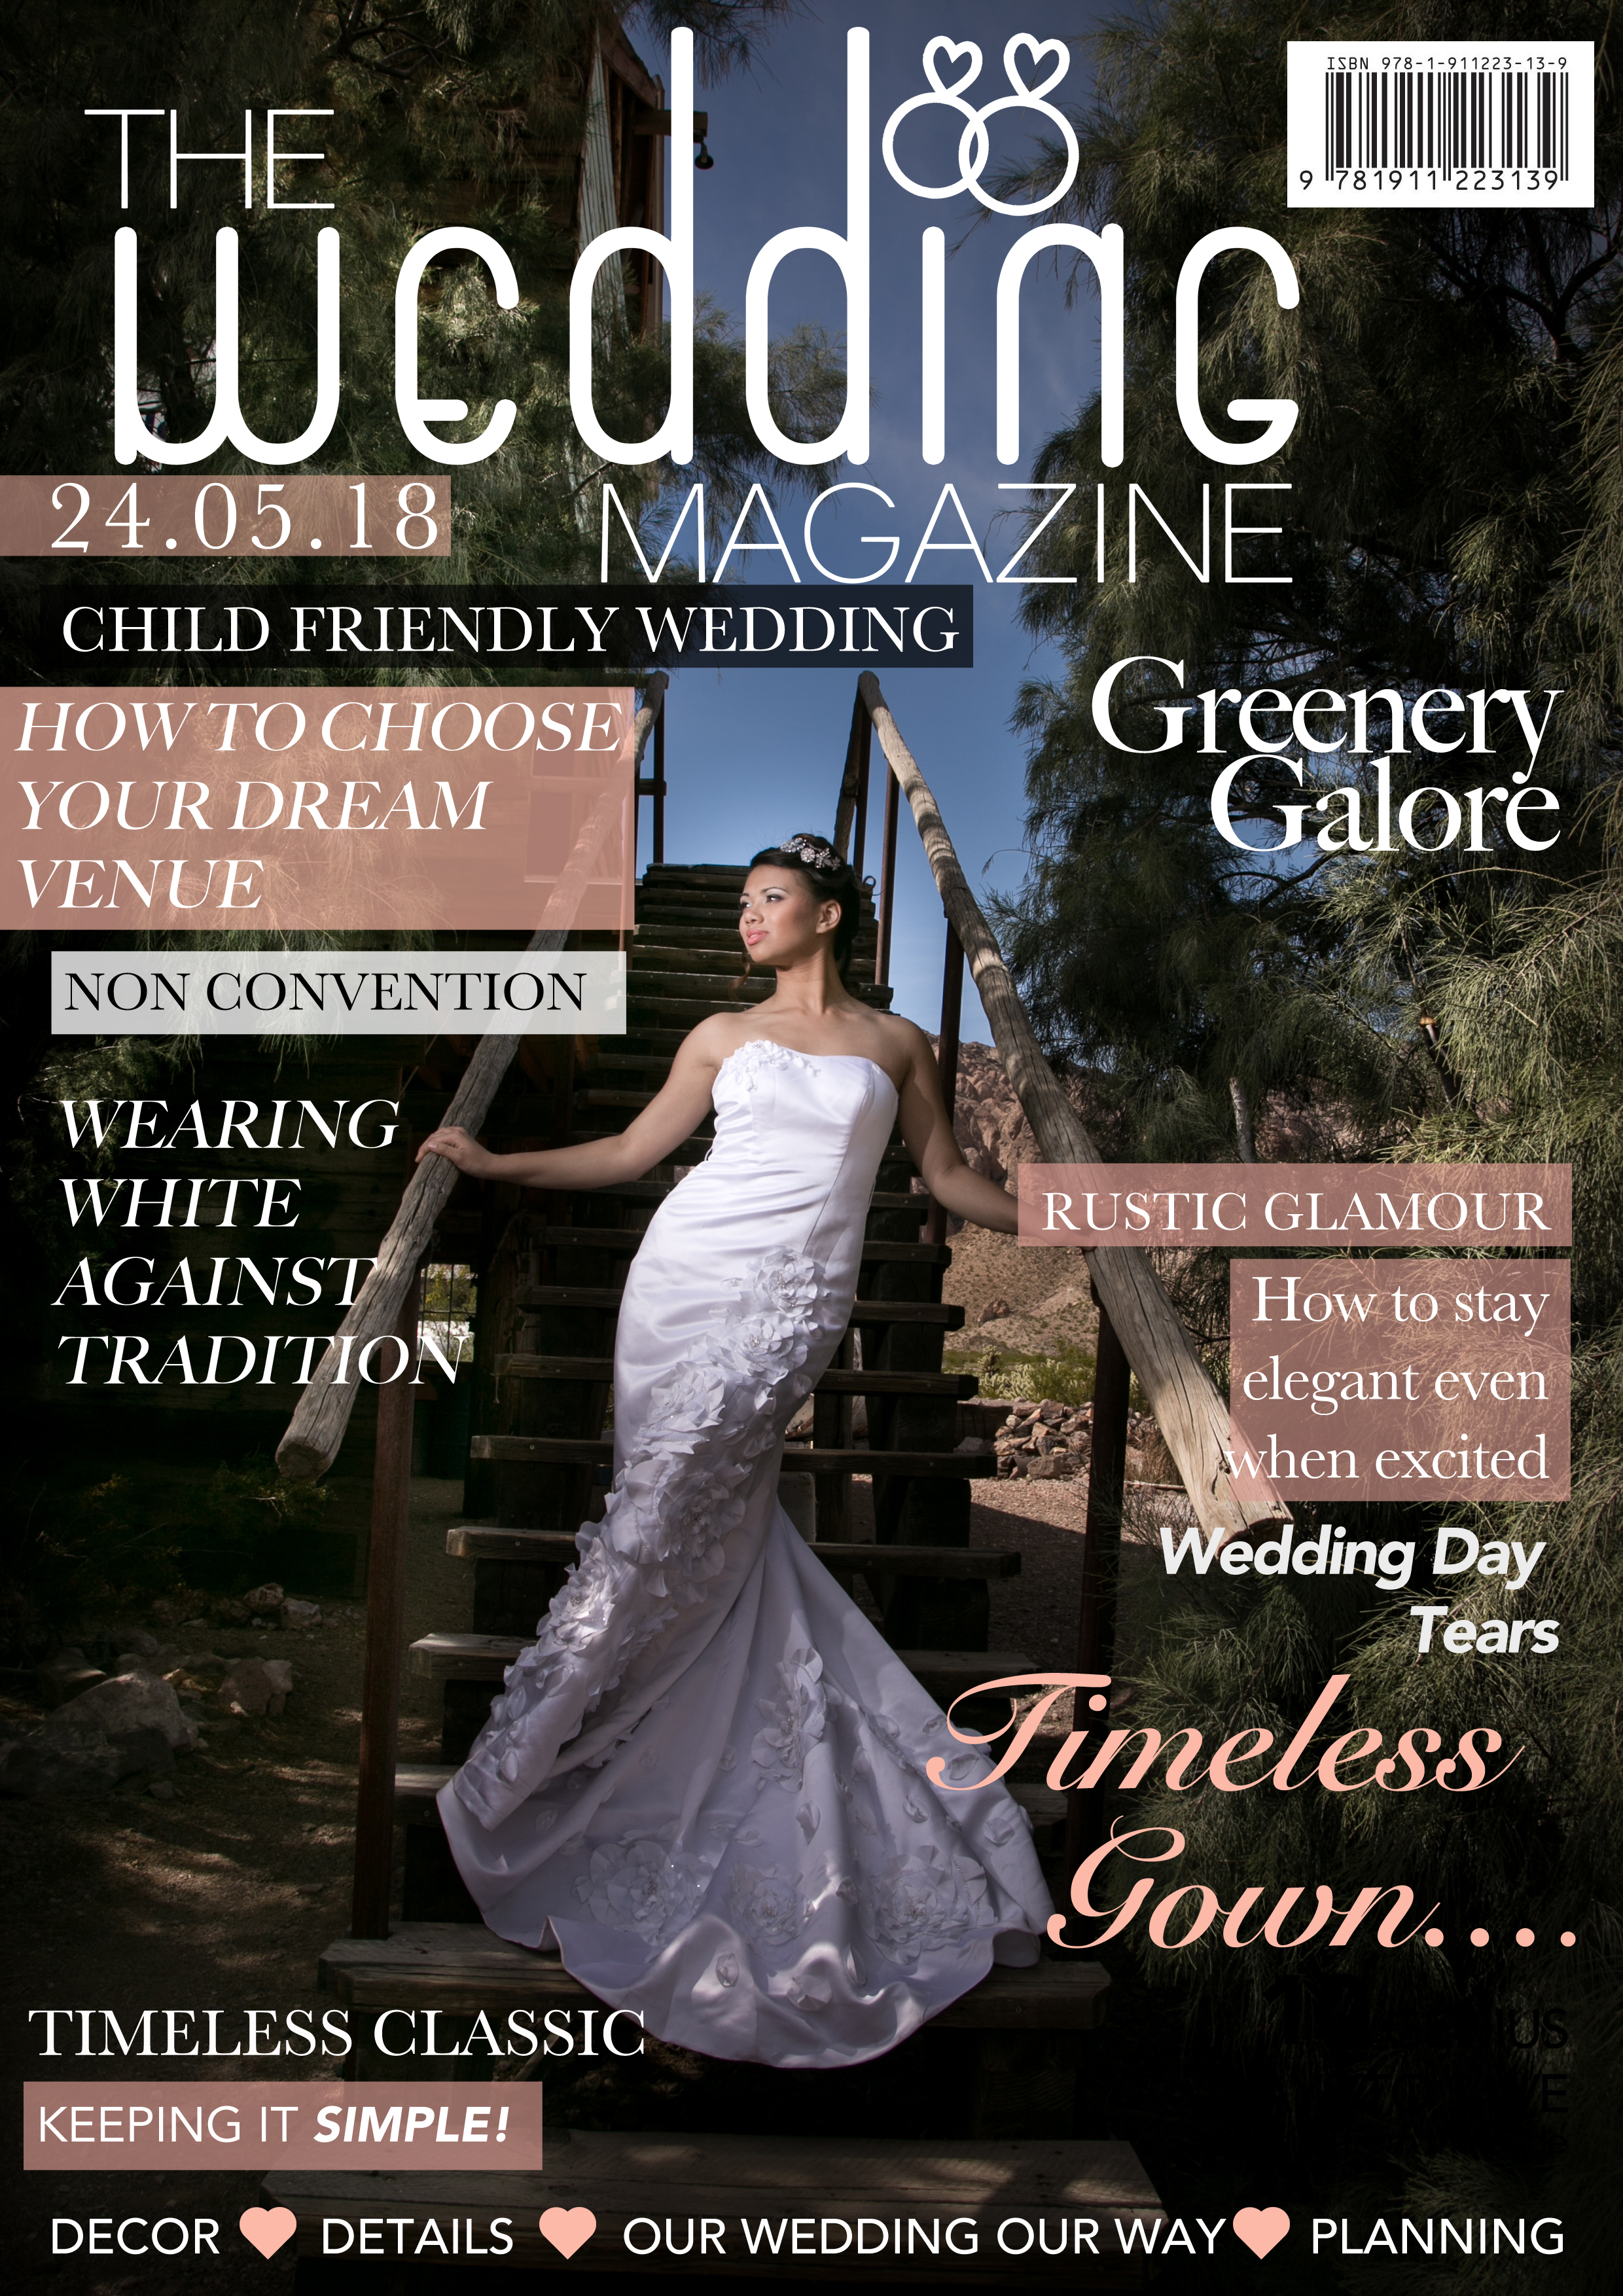 ups number one personal wedding magazine, personal Wedding magazine, The Wedding Magazine, the personalised wedding magazine, the luxury wedding magazine, the bespoke wedding magazine, planning a wedding, Wedding favours, wedding album, wedding trends